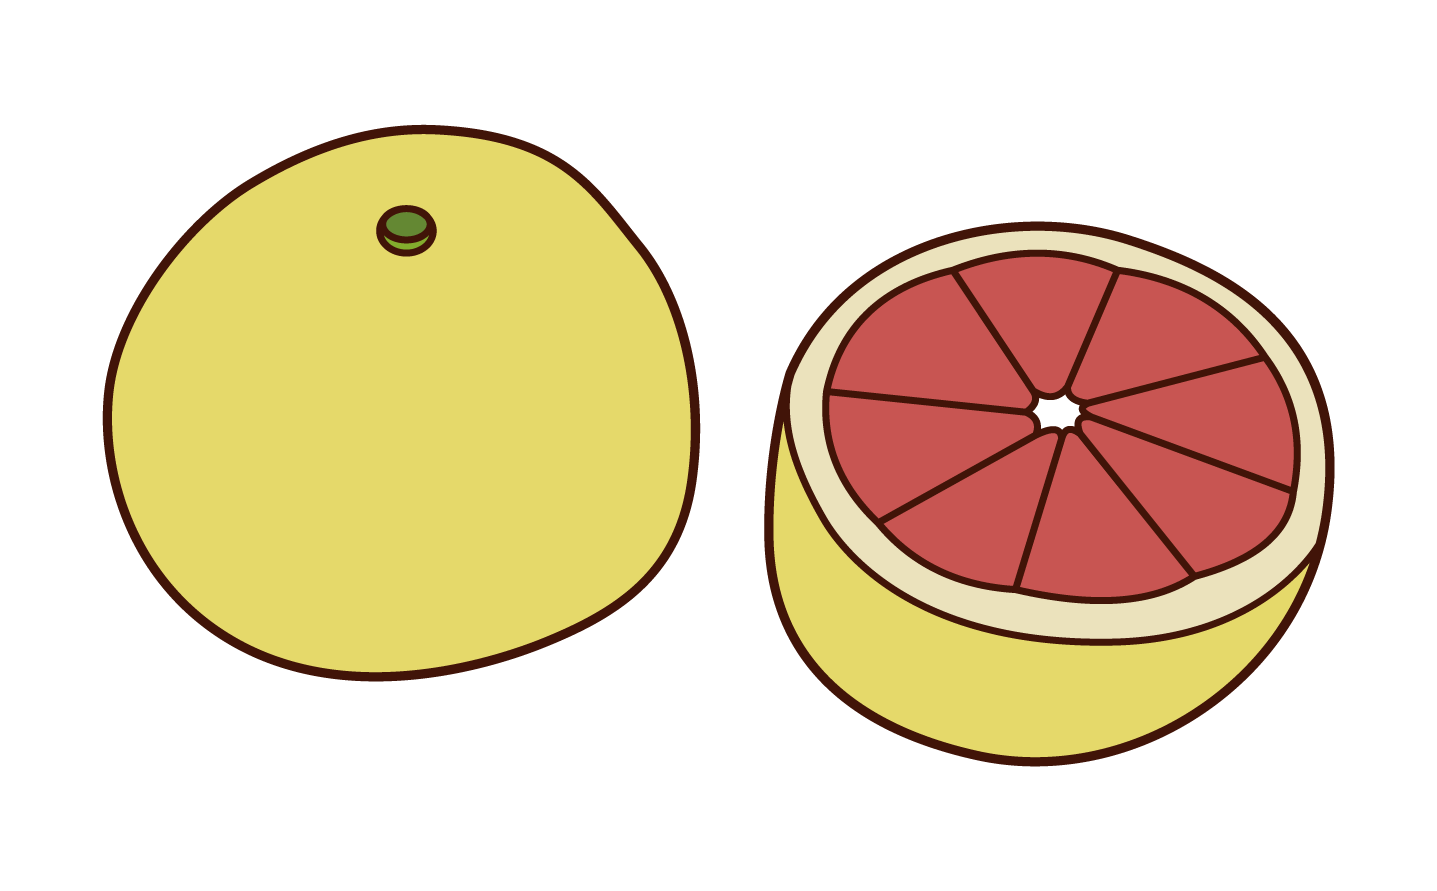 Grapefruit Illustrations